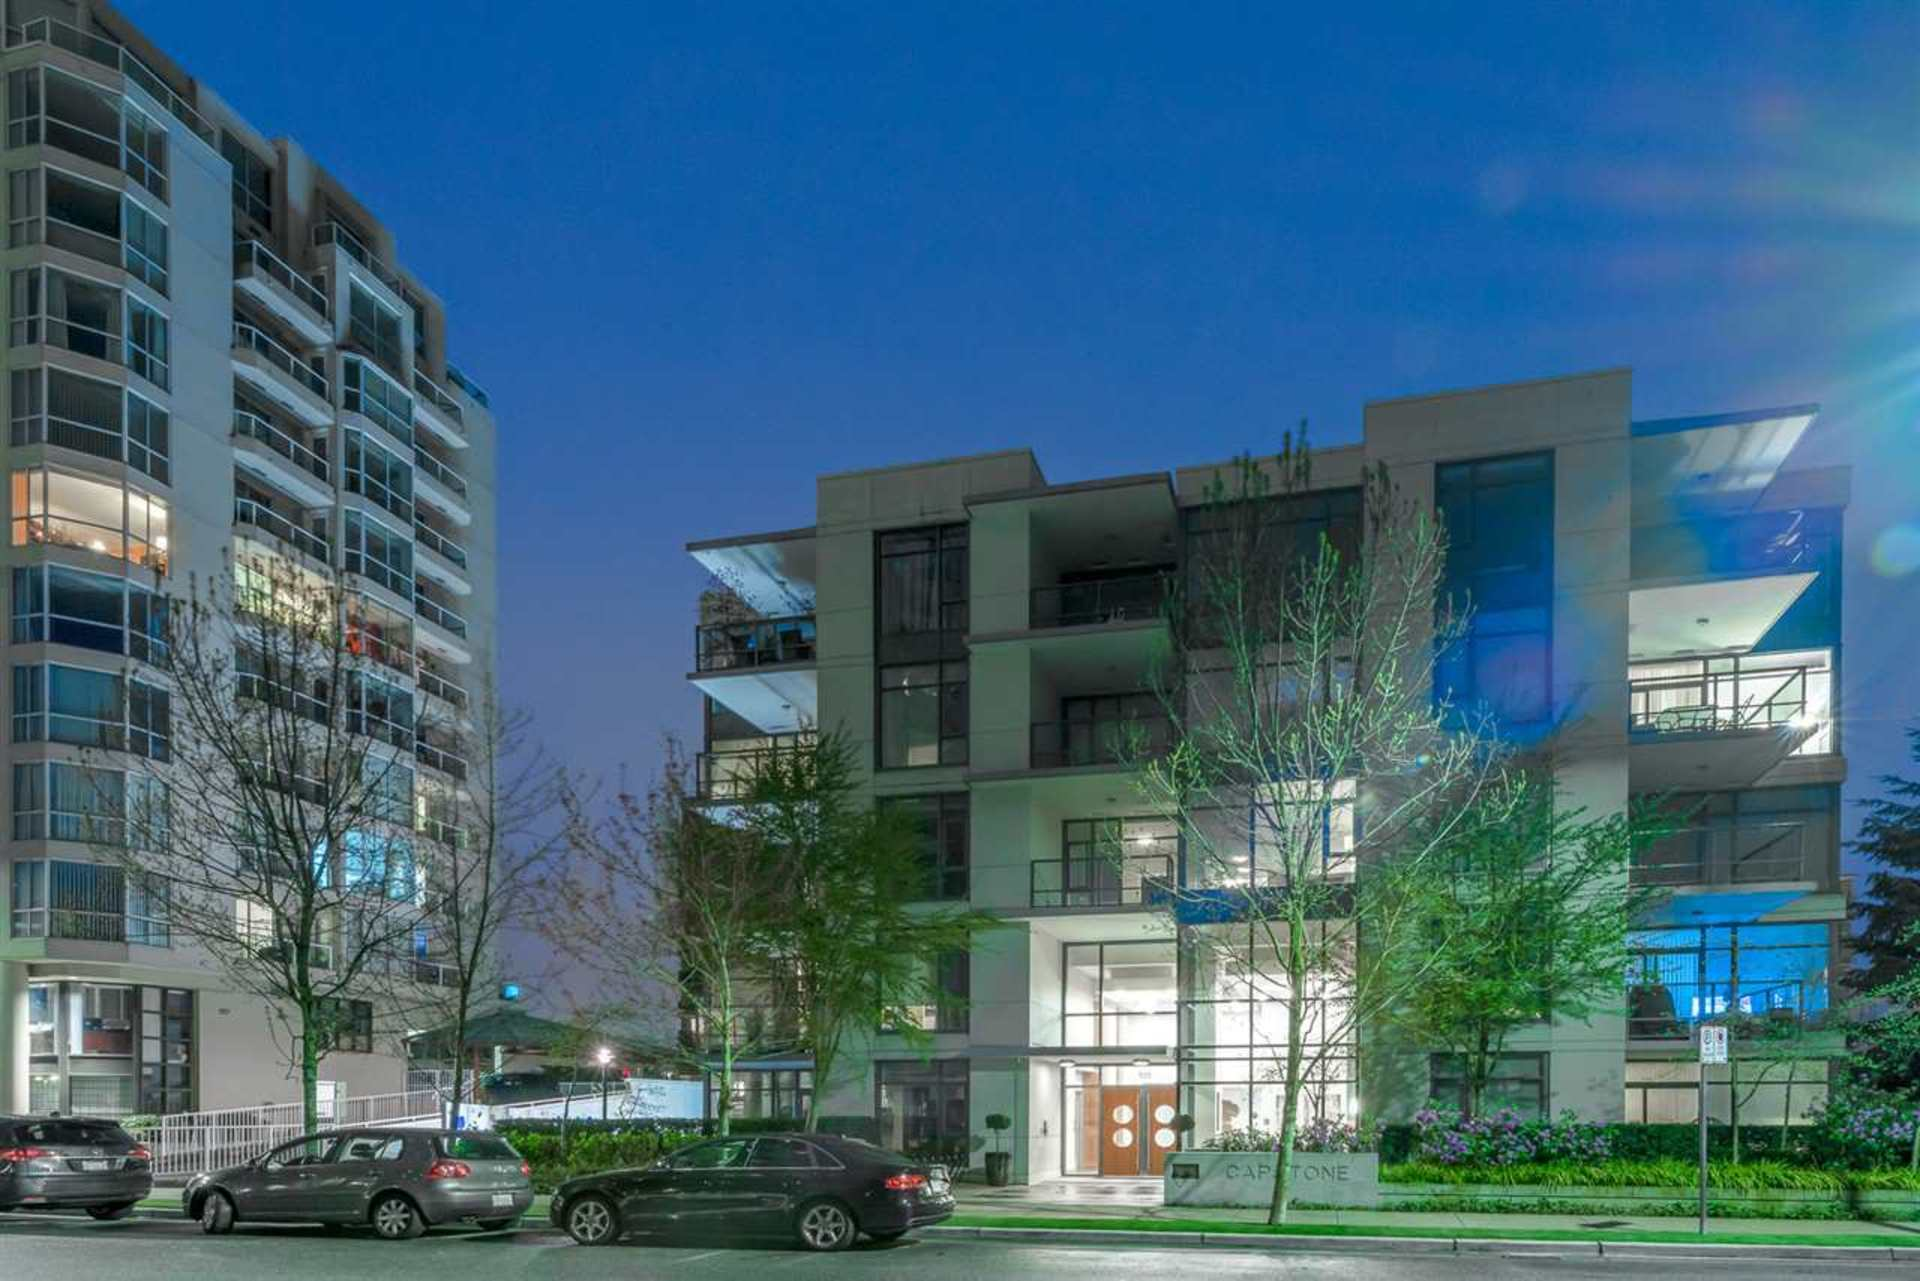 135-w-2nd-avenue-lower-lonsdale-north-vancouver-17 at 207 - 135 W 2nd Street, Lower Lonsdale, North Vancouver